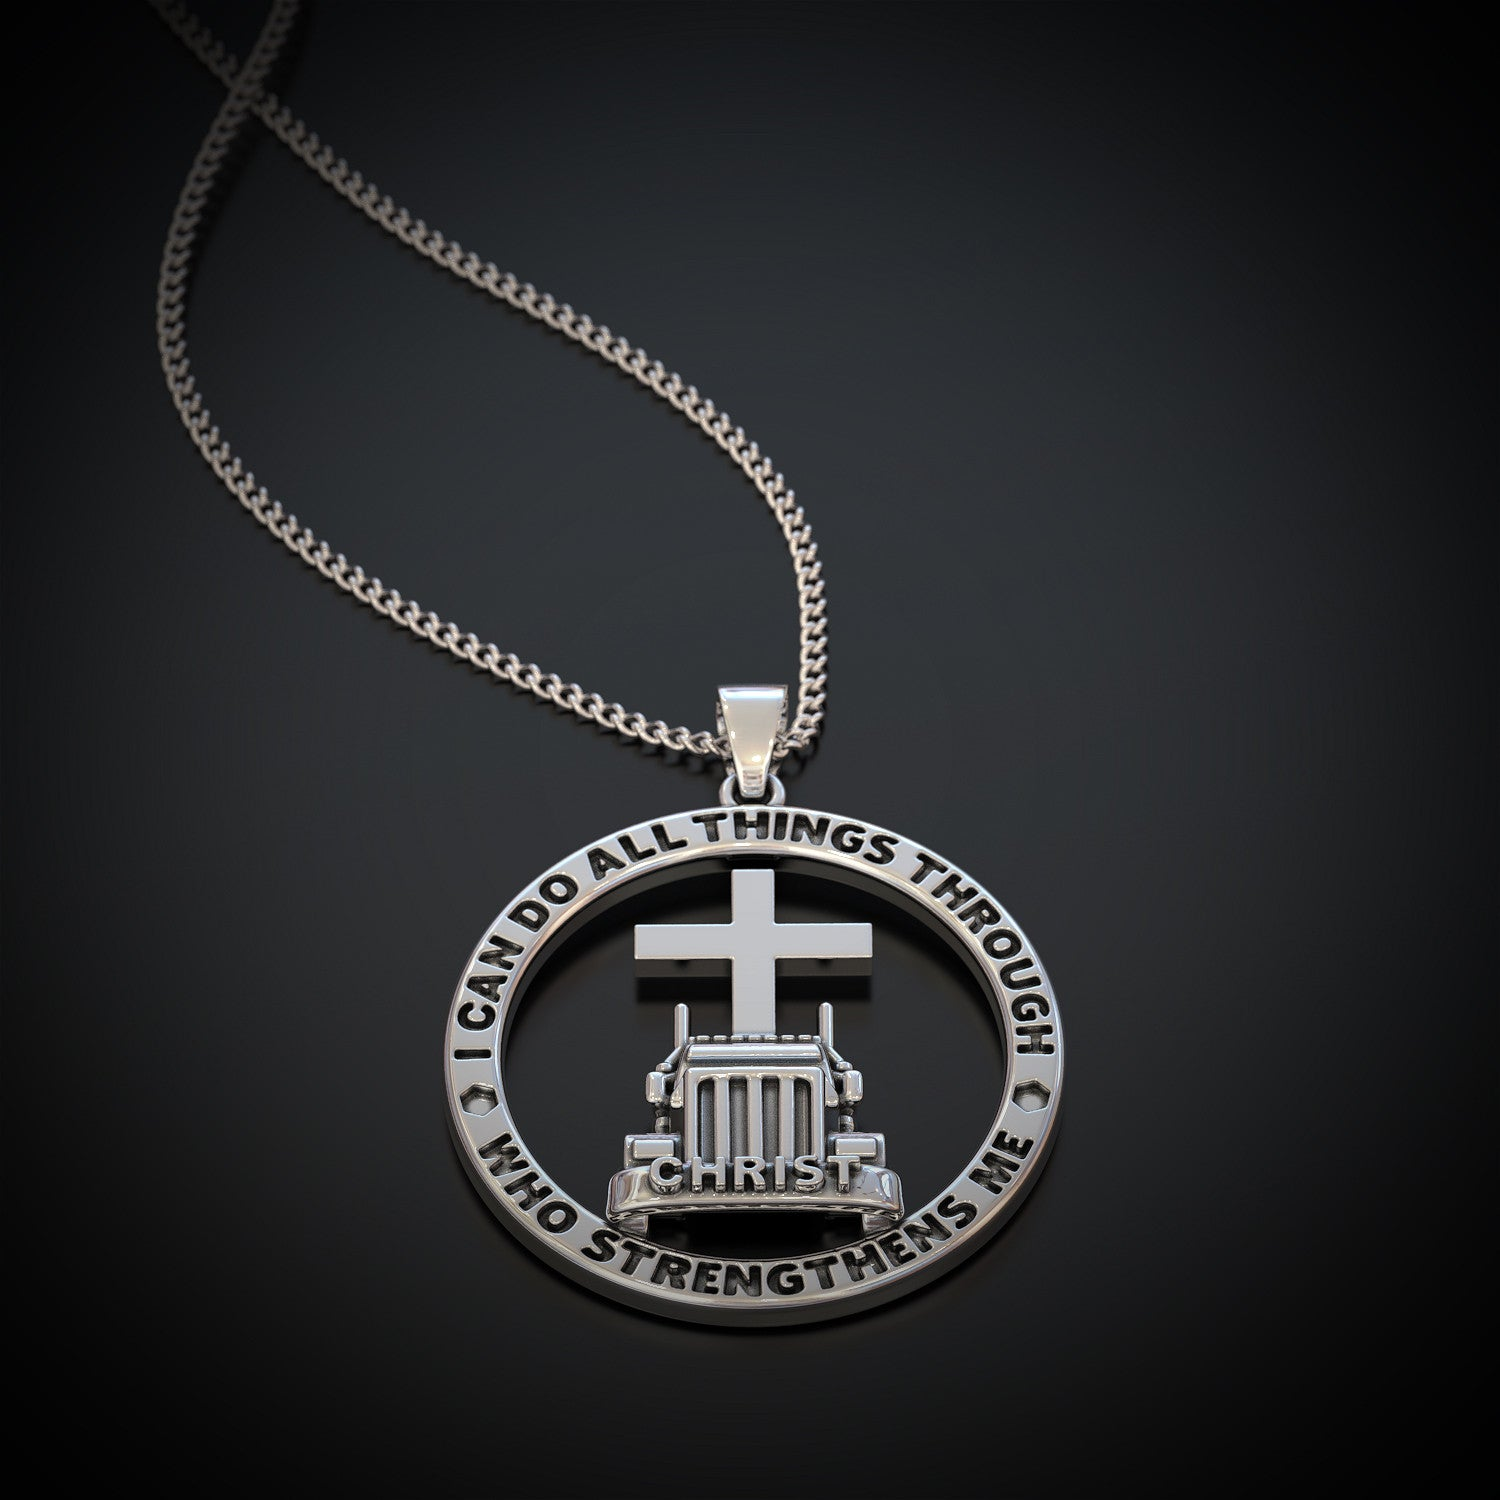 Trucker Necklace All Things Through Christ